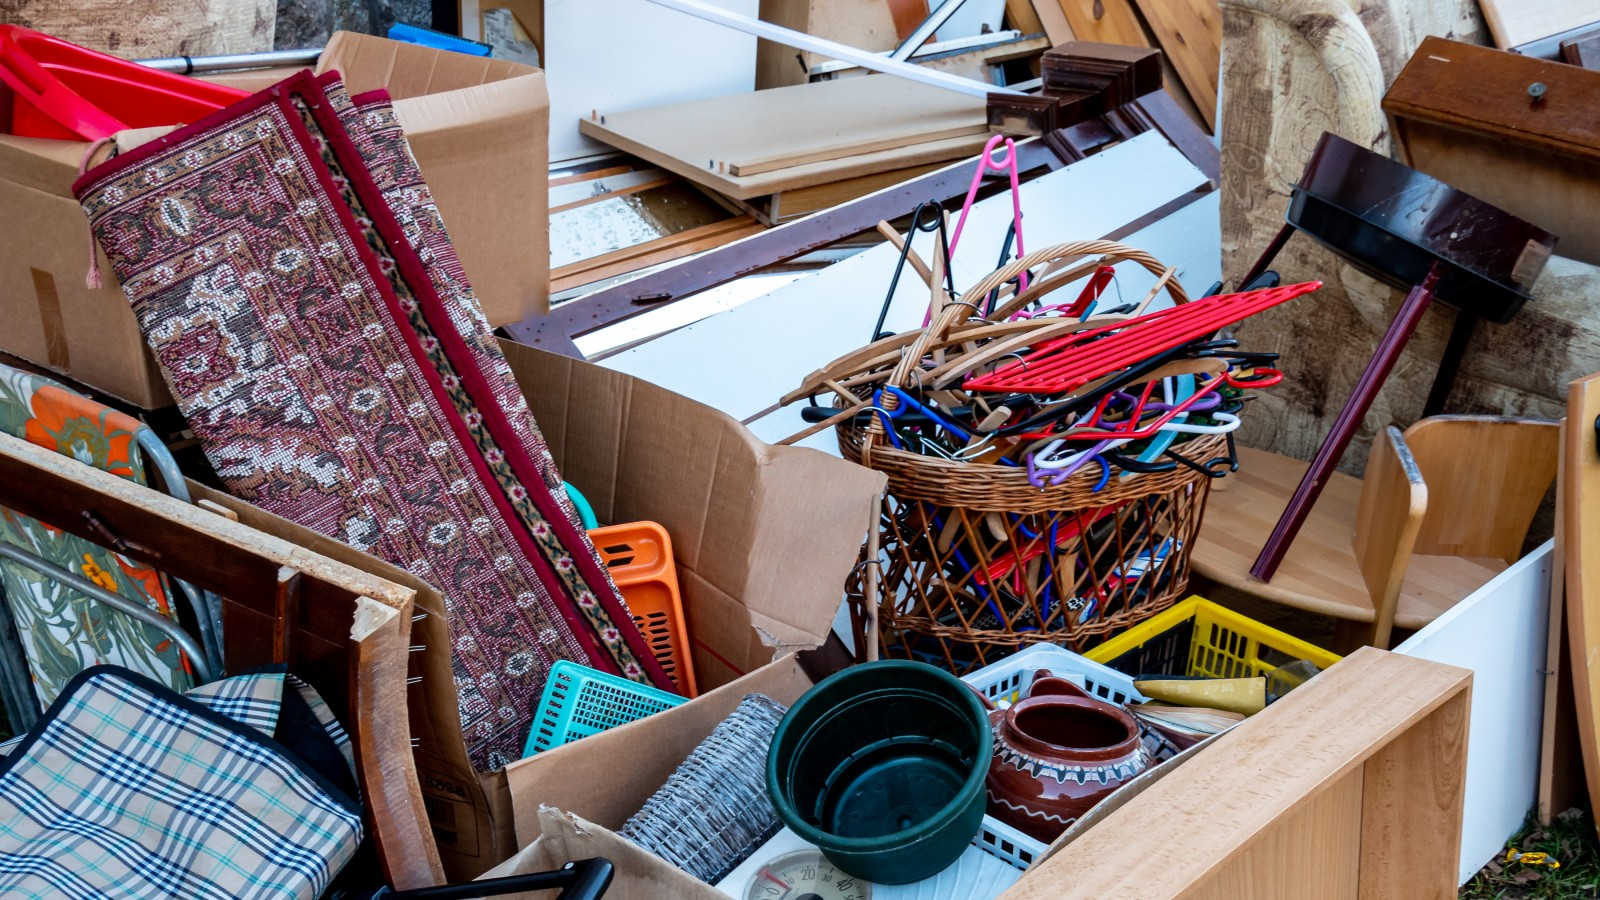 What Can a House Clearance Service Do for You?